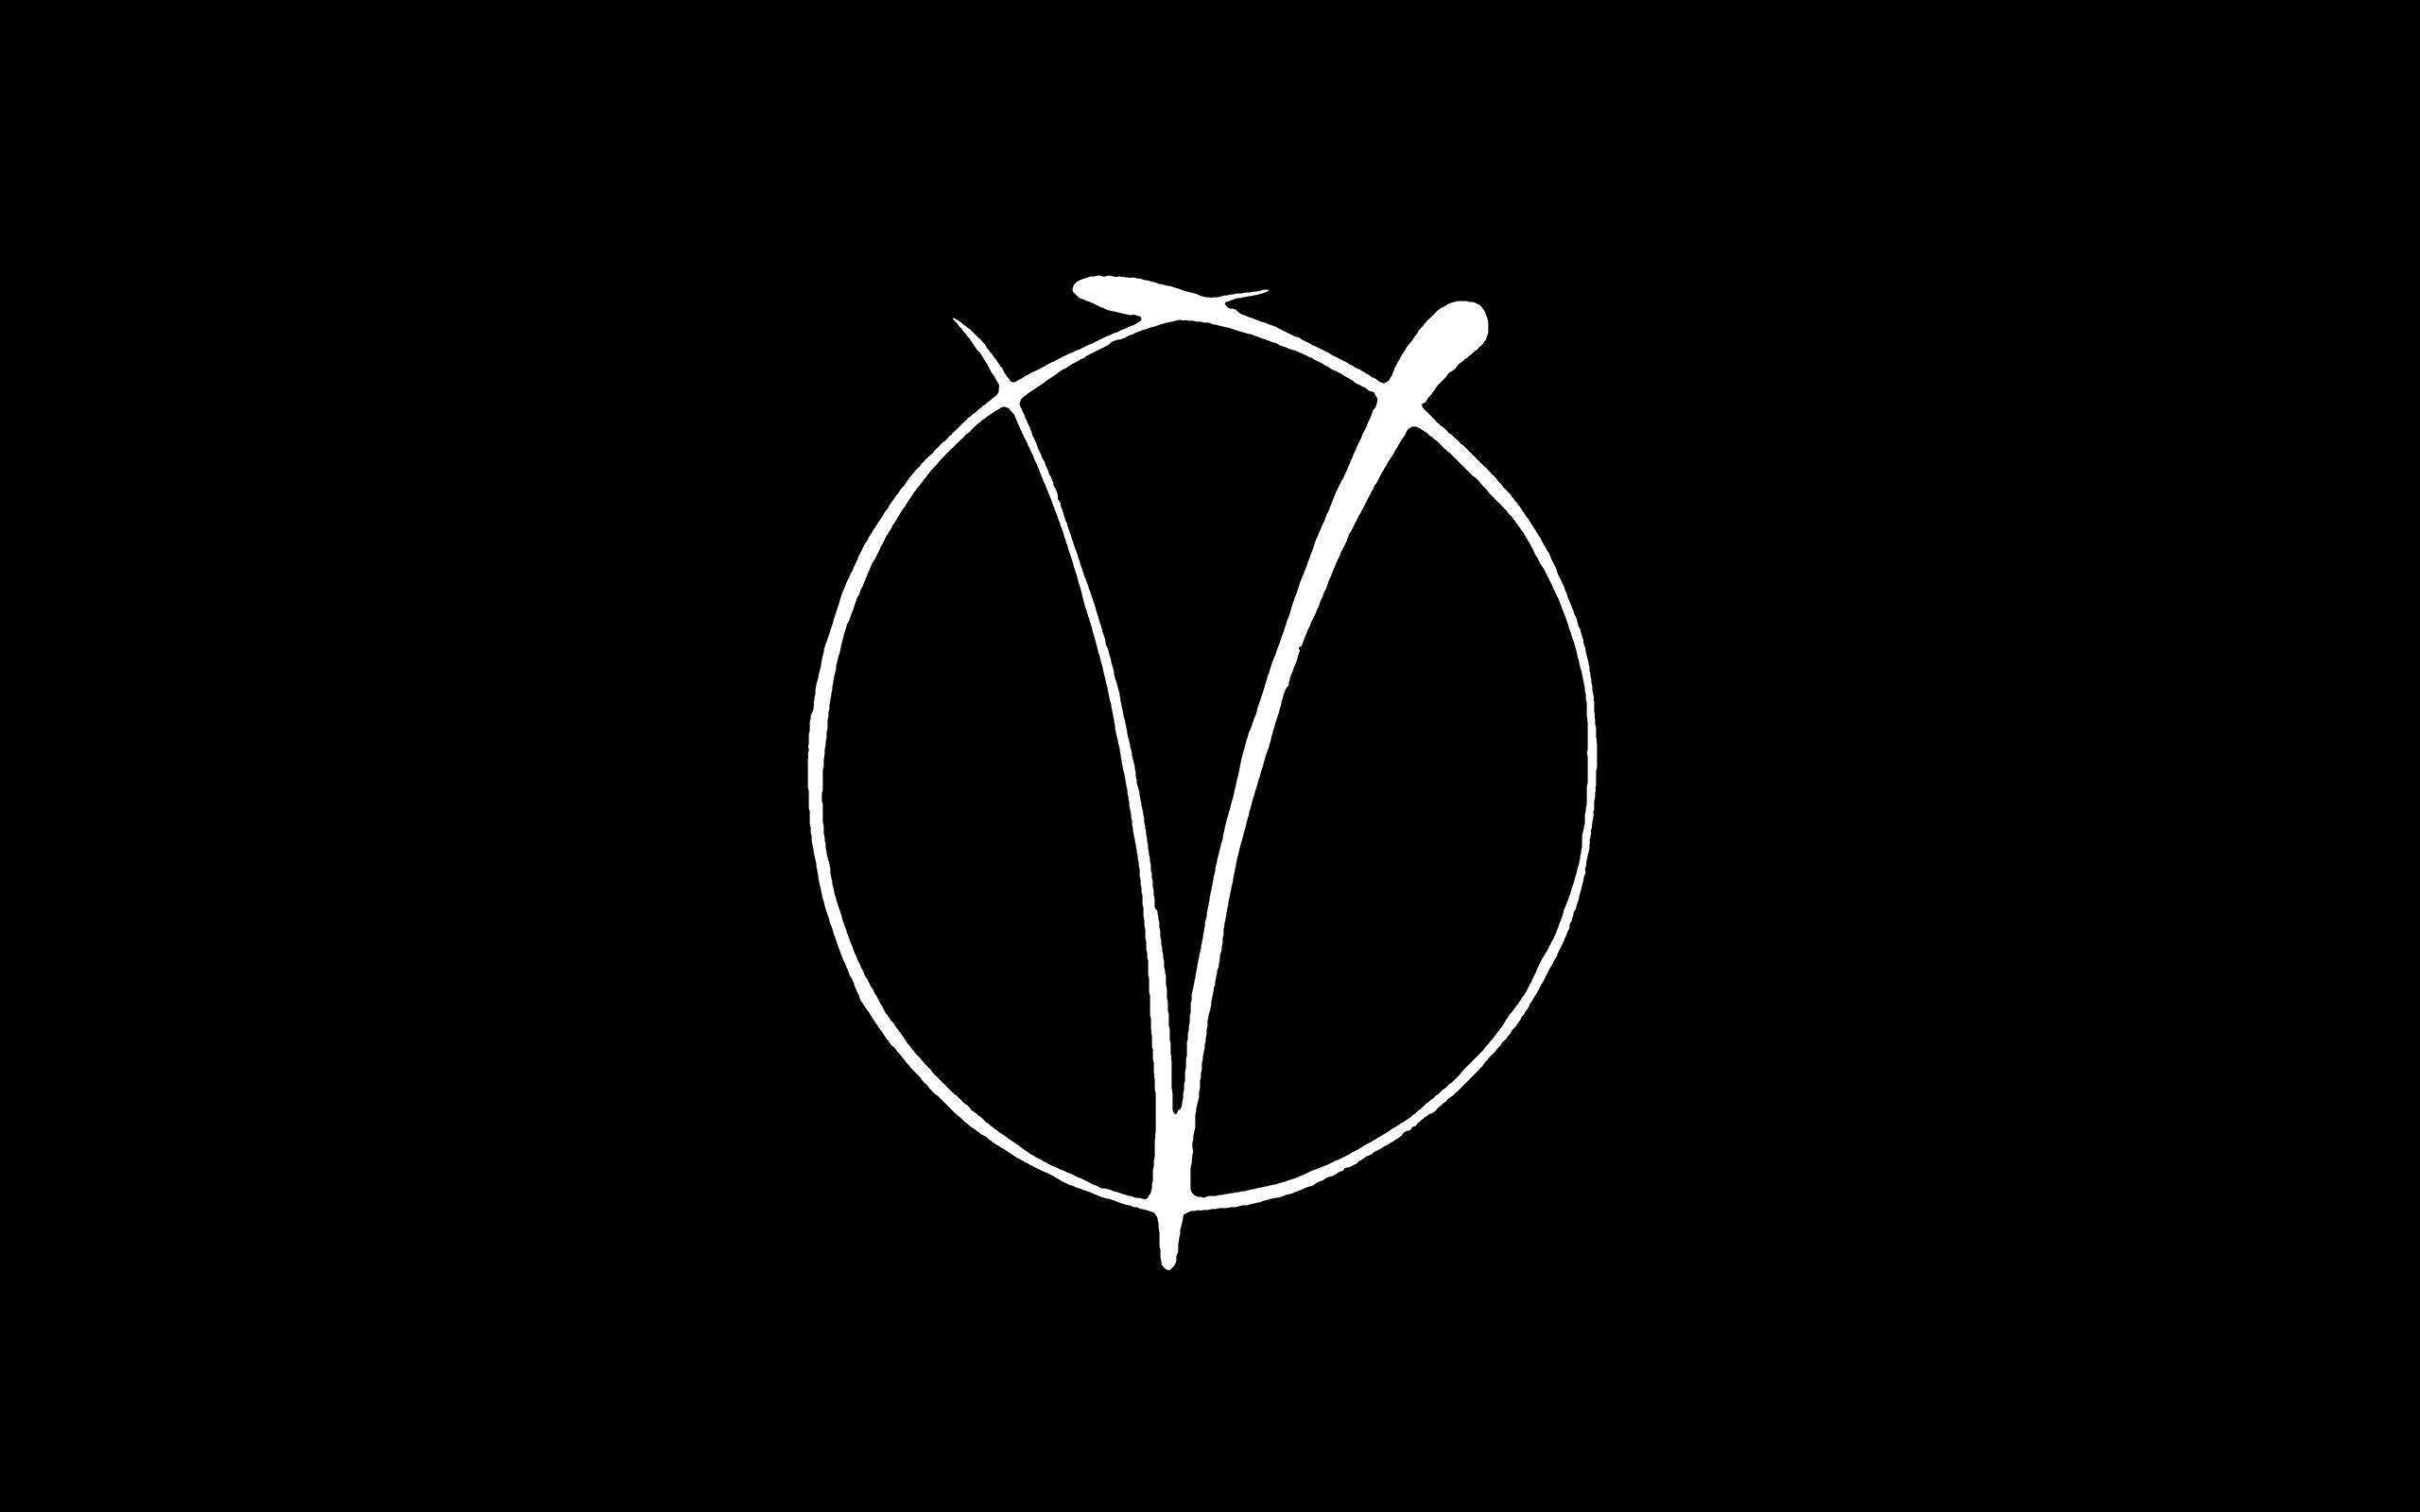 V For Vendetta Minimalism Black White Logo Movies Wallpapers